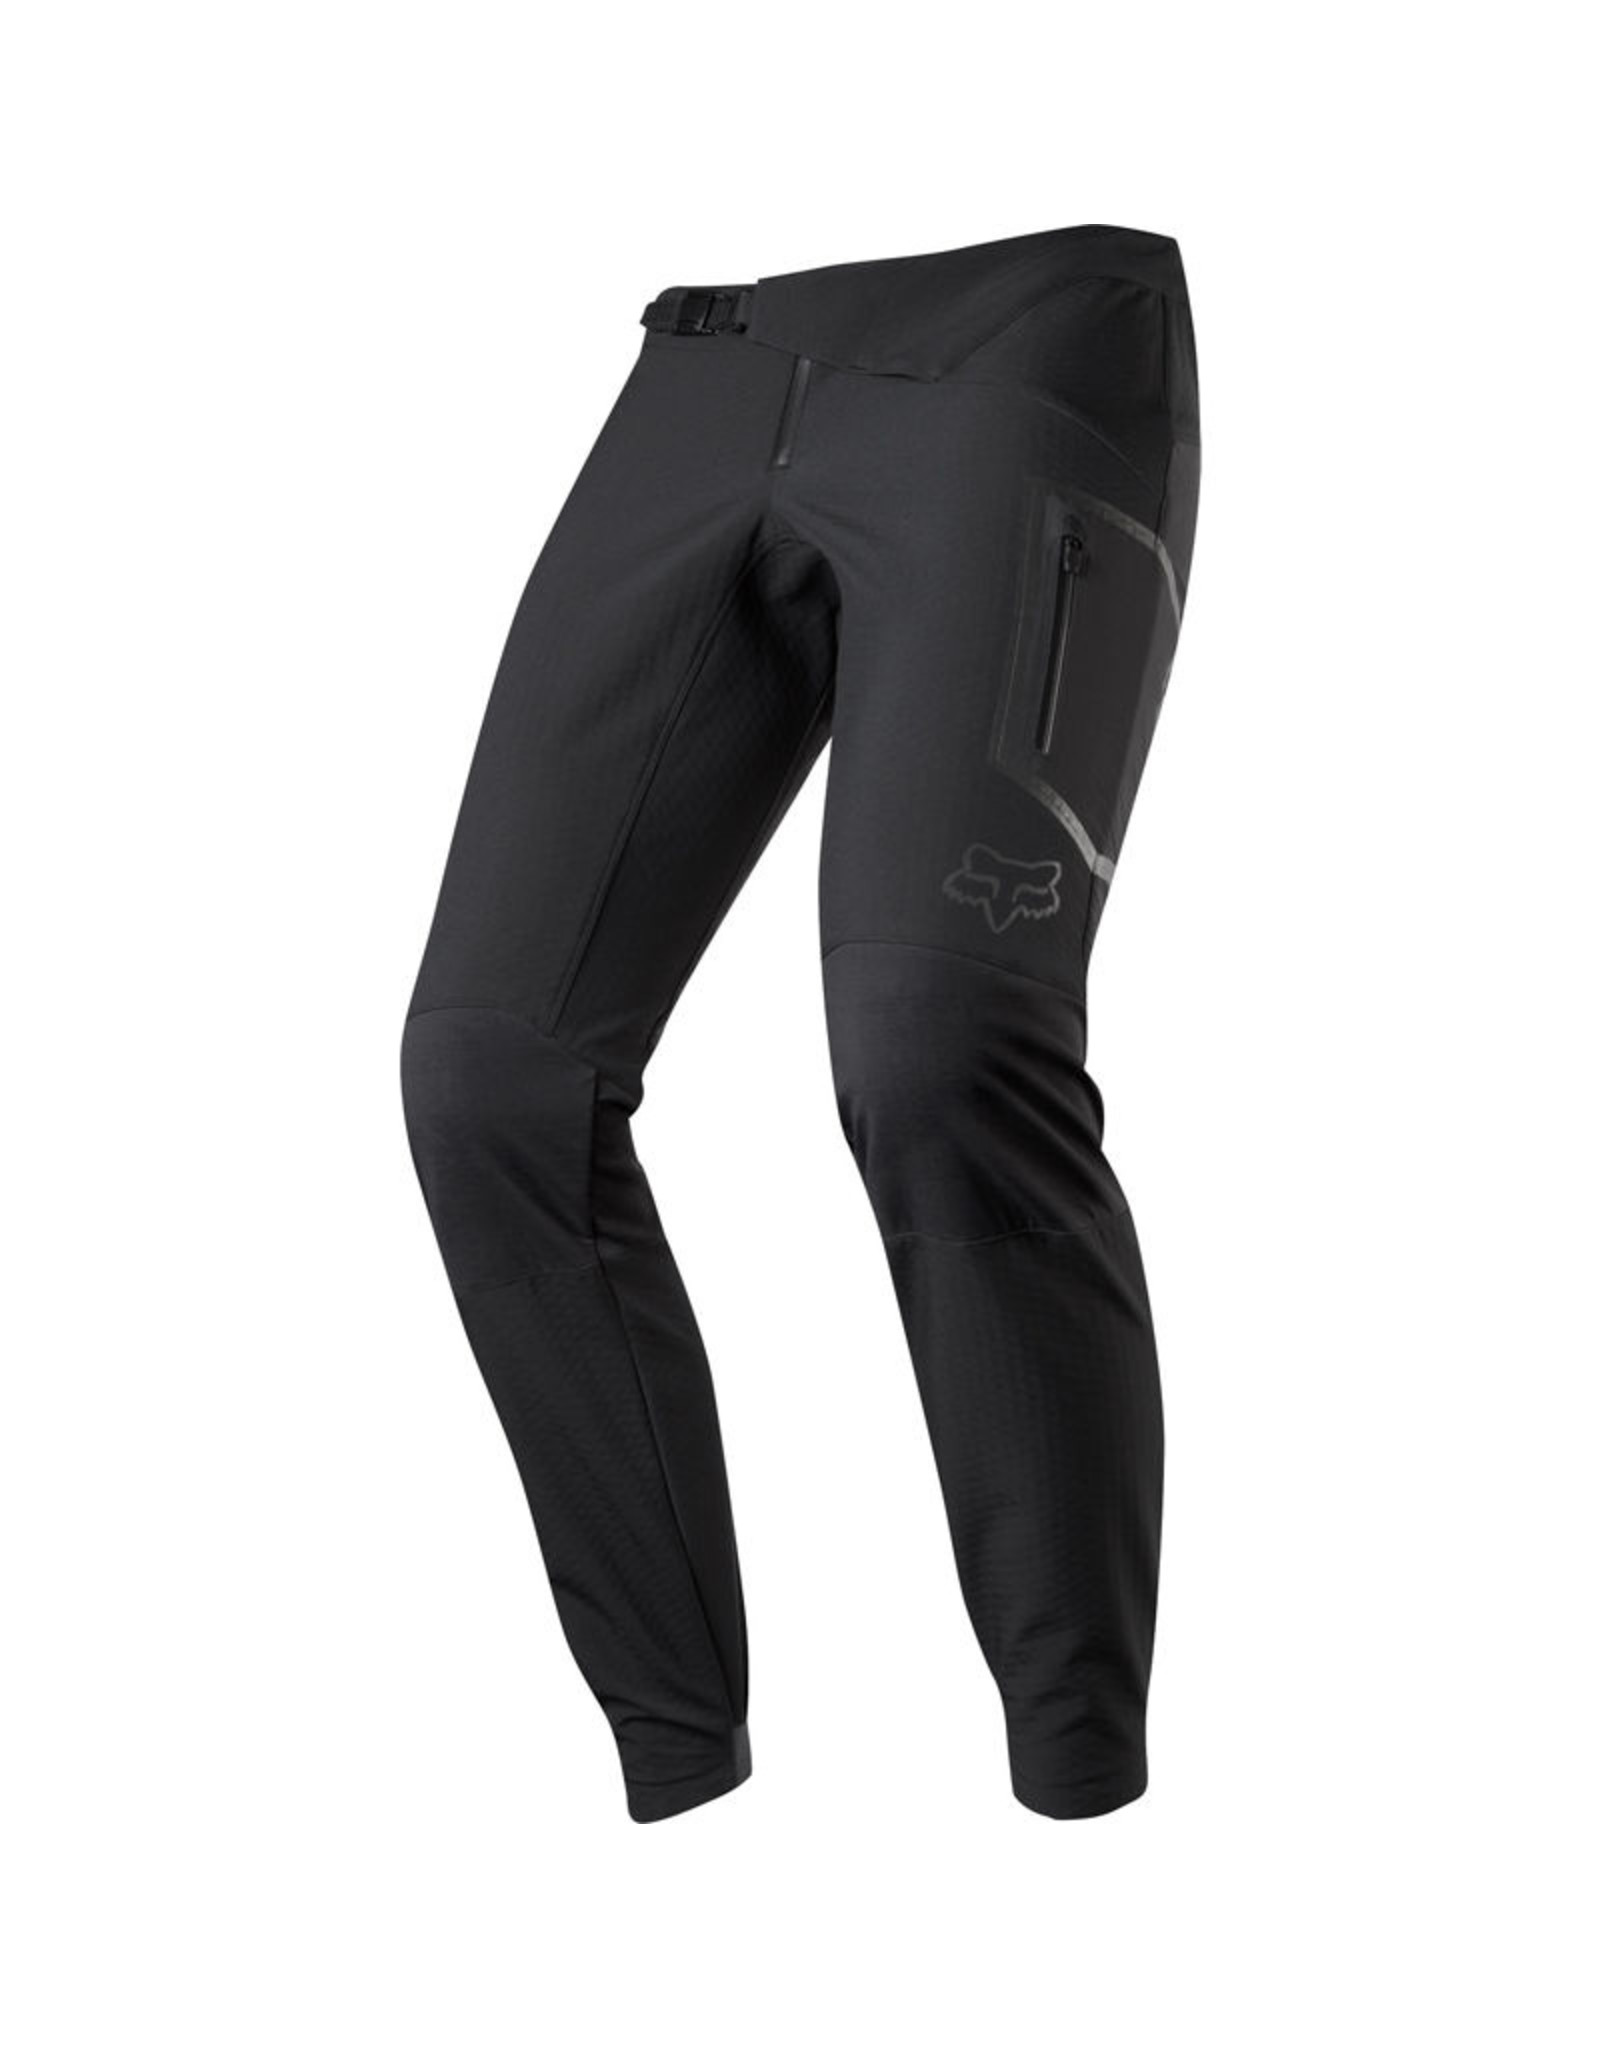 FOX HEAD CLOTHING DEFEND FIRE PANT BLACK